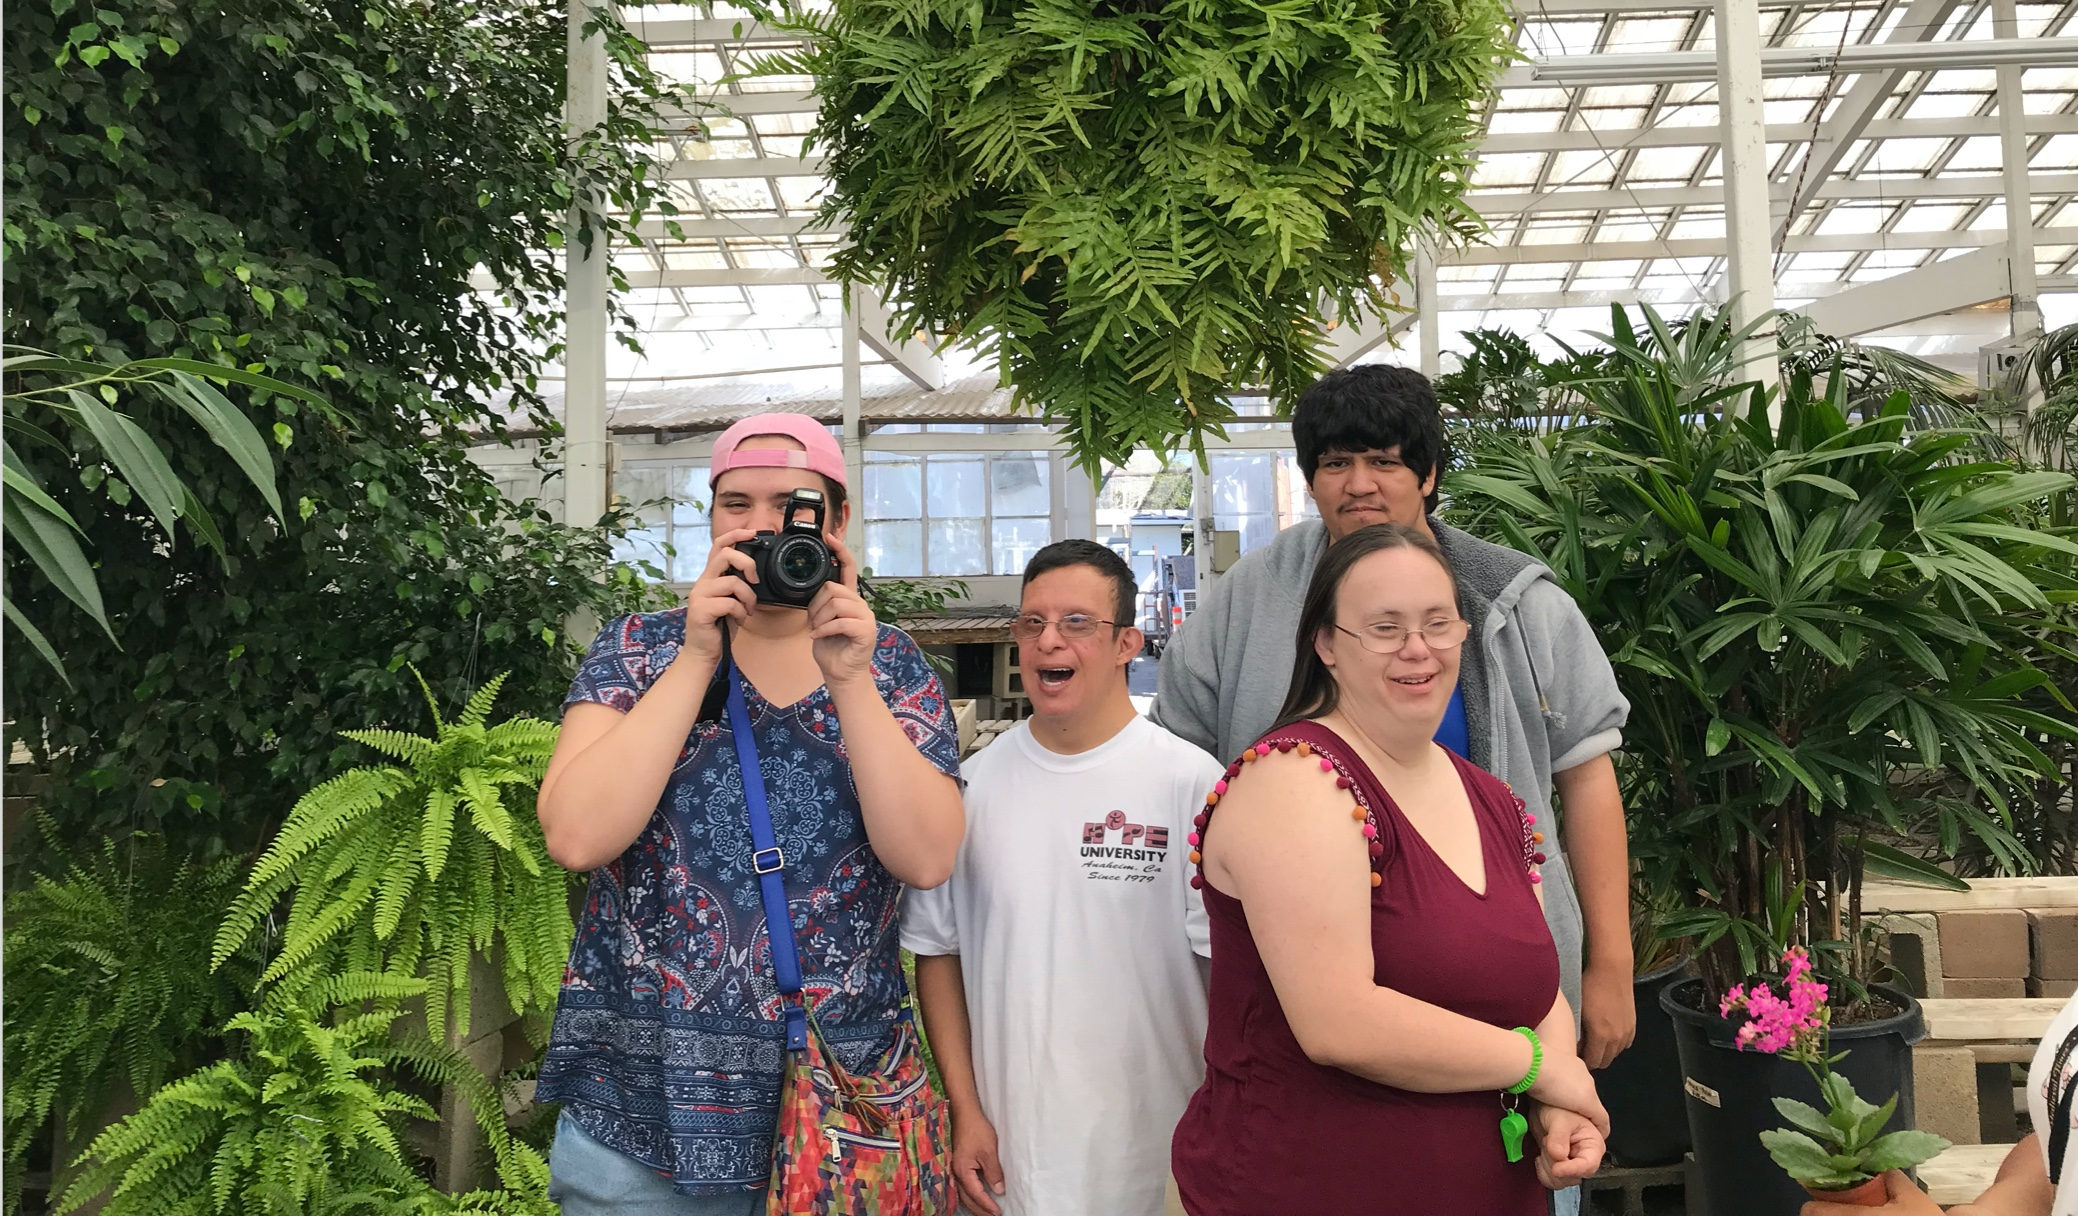 Four HOPE Center artists, one on the left holding a camera, smiling in a green plant nursery.